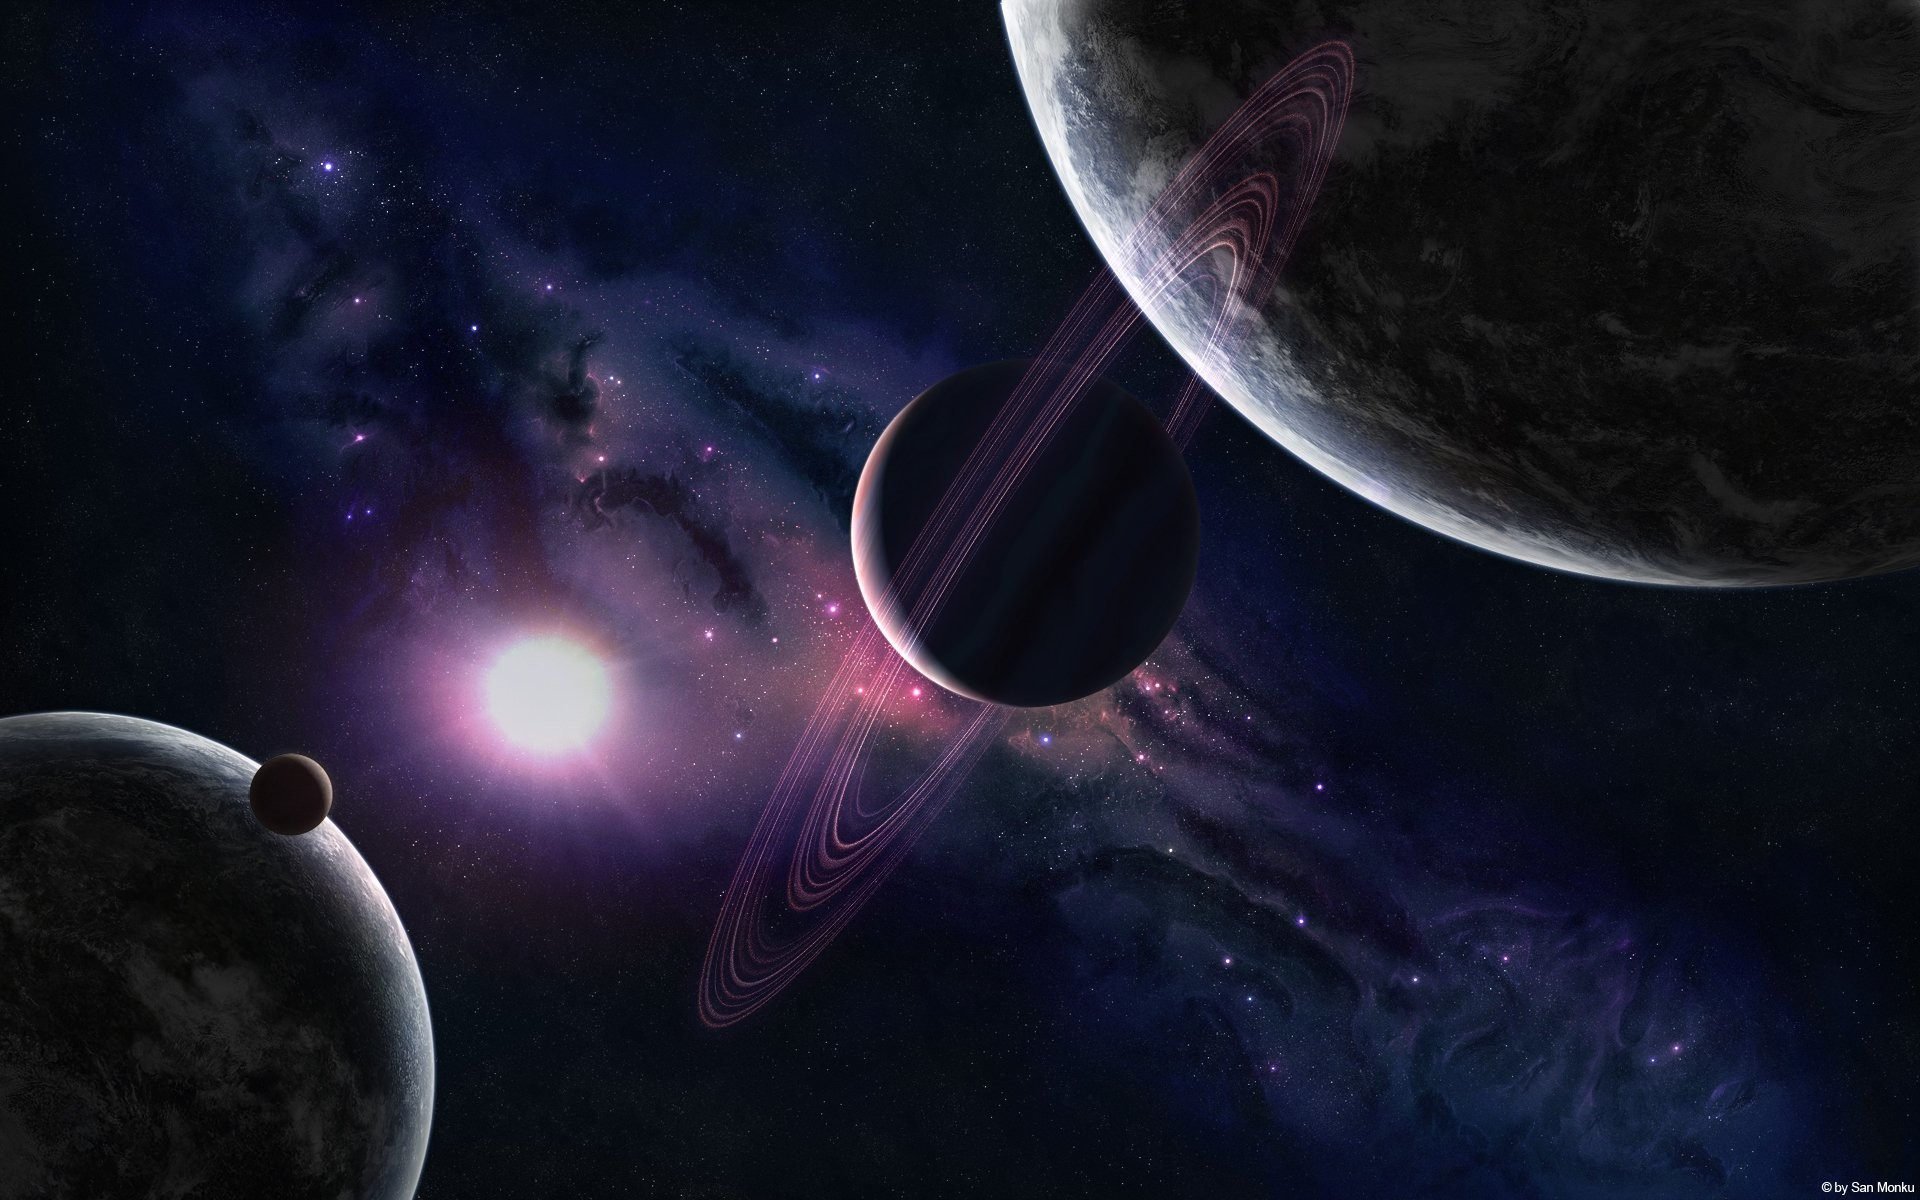 Space Tumblr Wallpapers Desktop Background with High Definition Resolution  px 324.88 KB